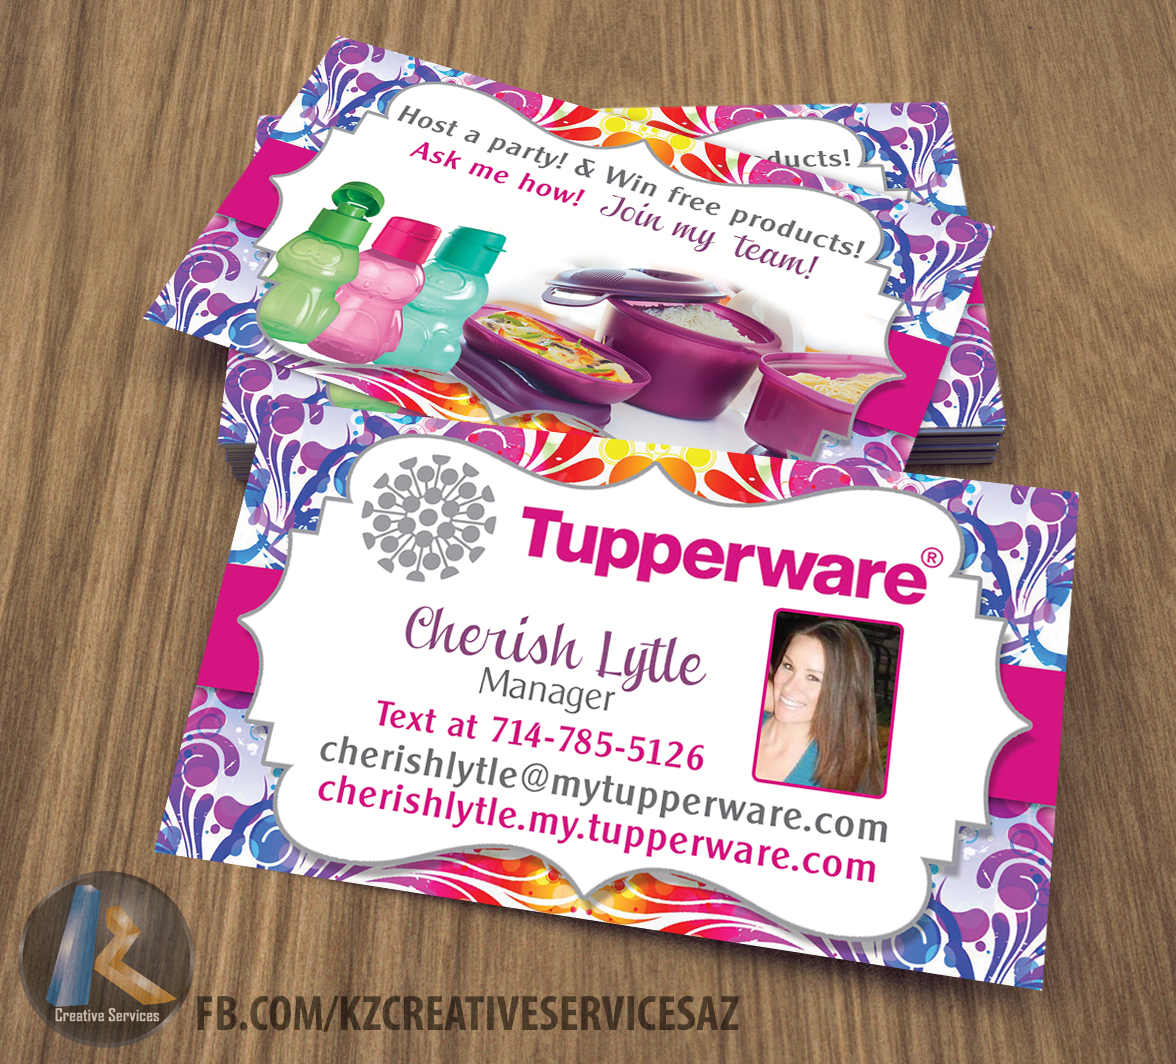 tupperware business cards style 1 - Tupperware Business Cards